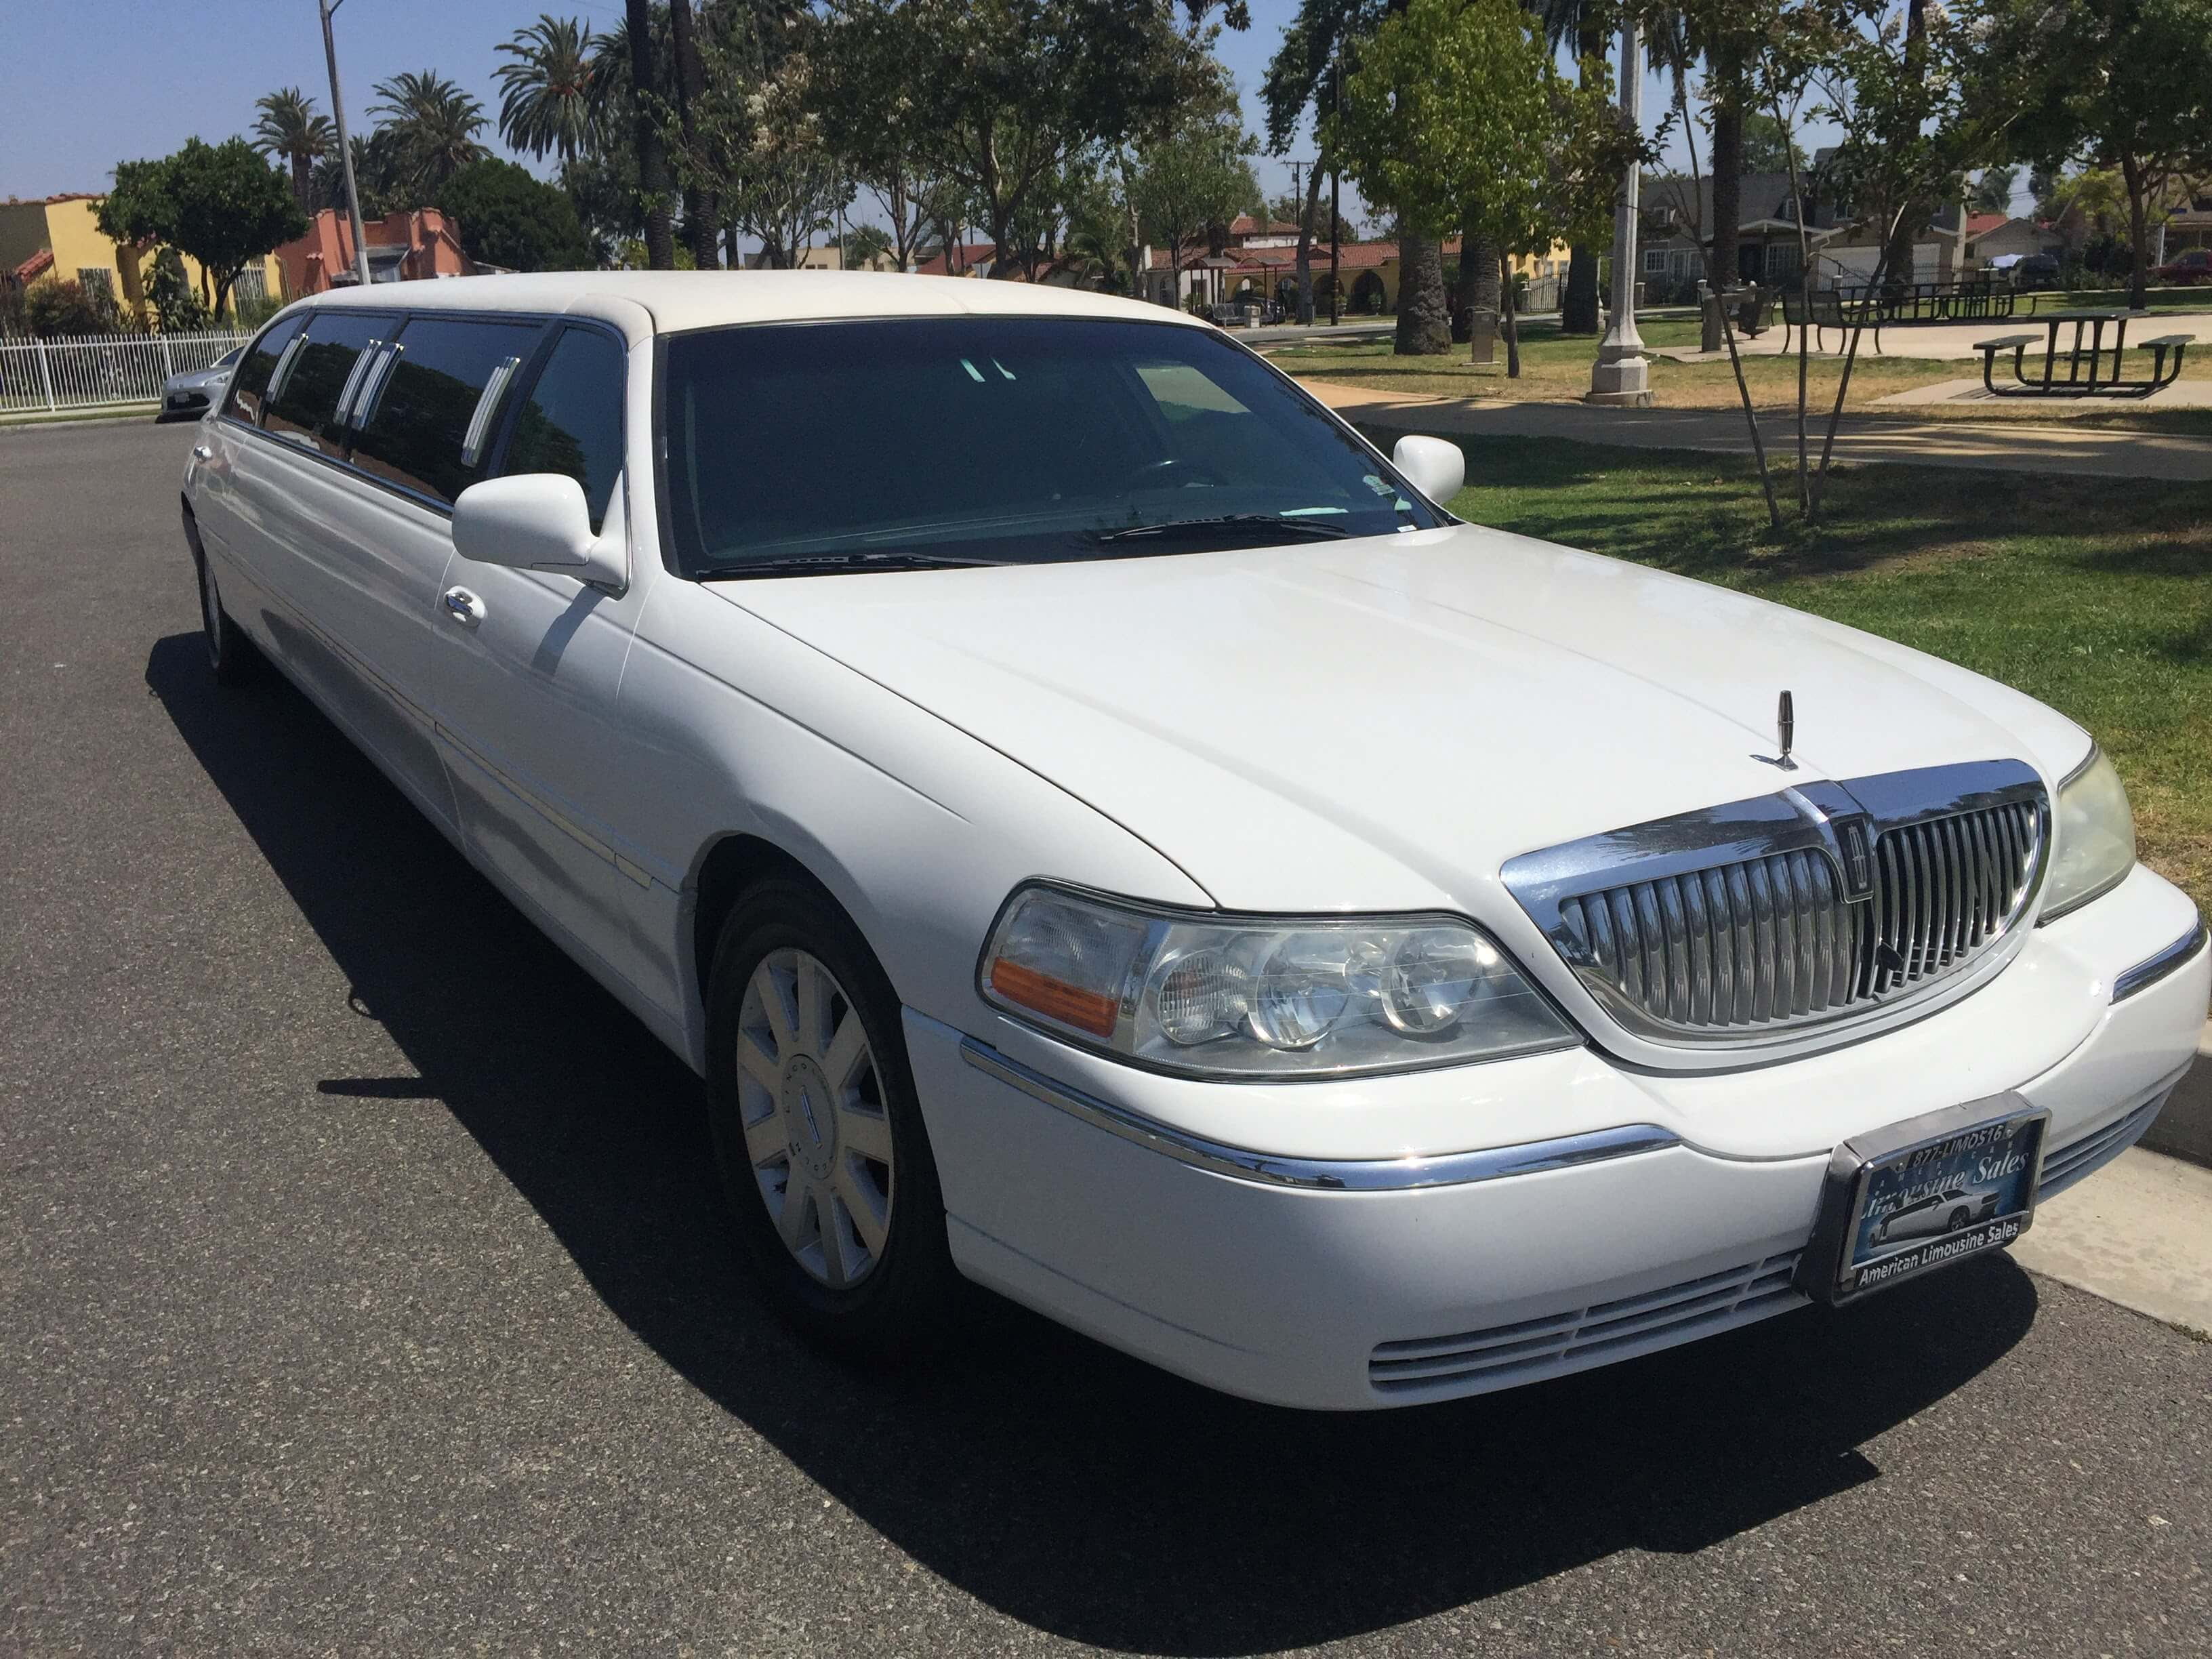 Limousines Limos For Sale Limousine Sales Used Limo Autos Post